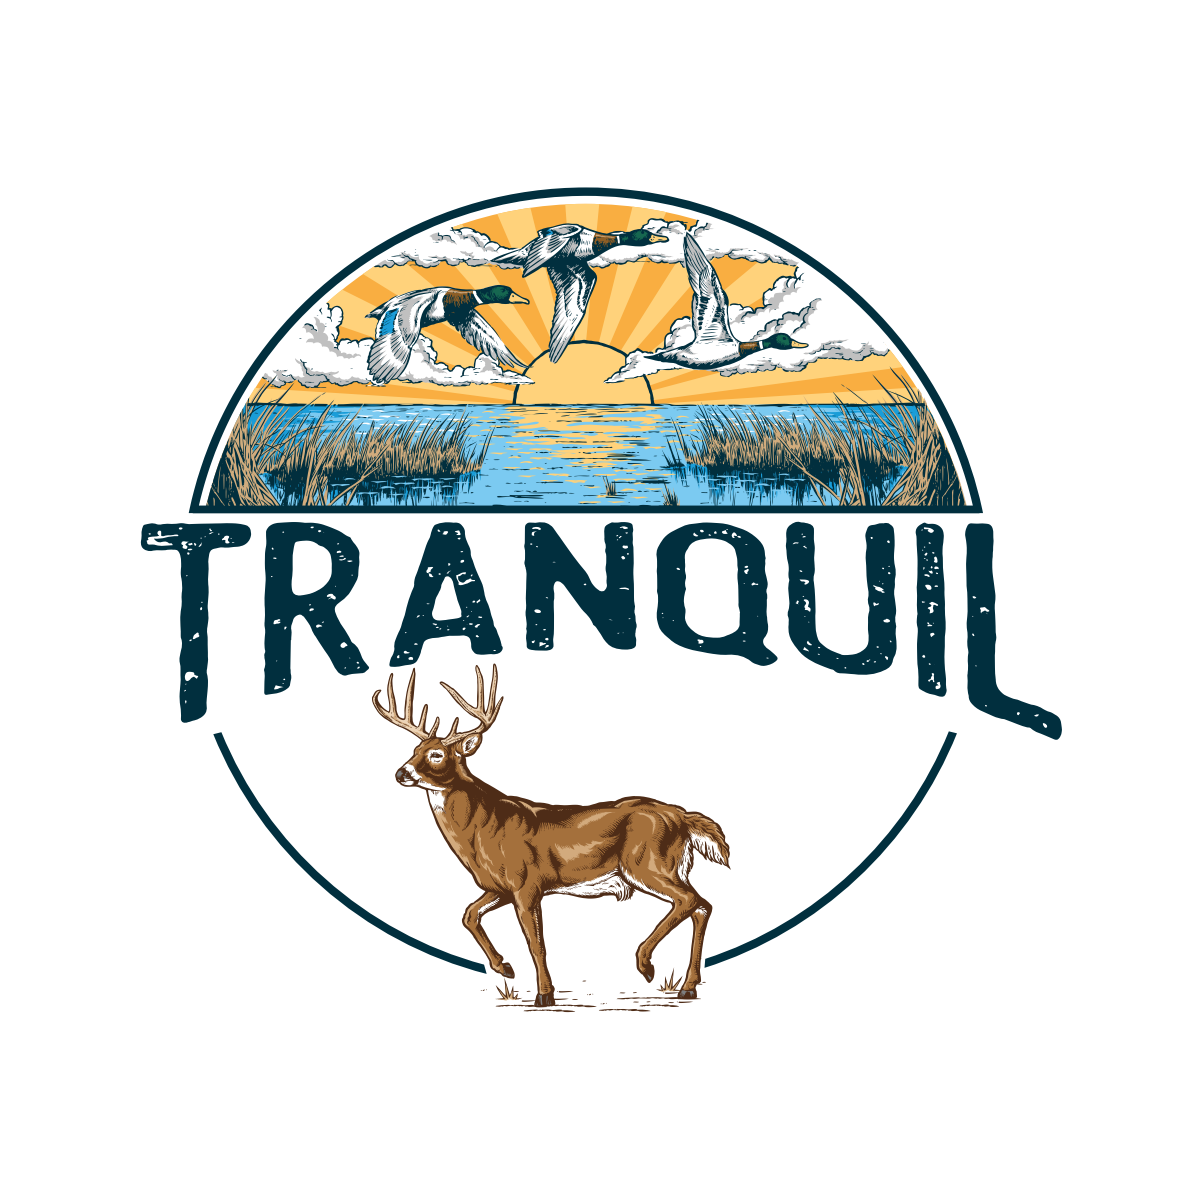 Logo for an outdoors clothing brand